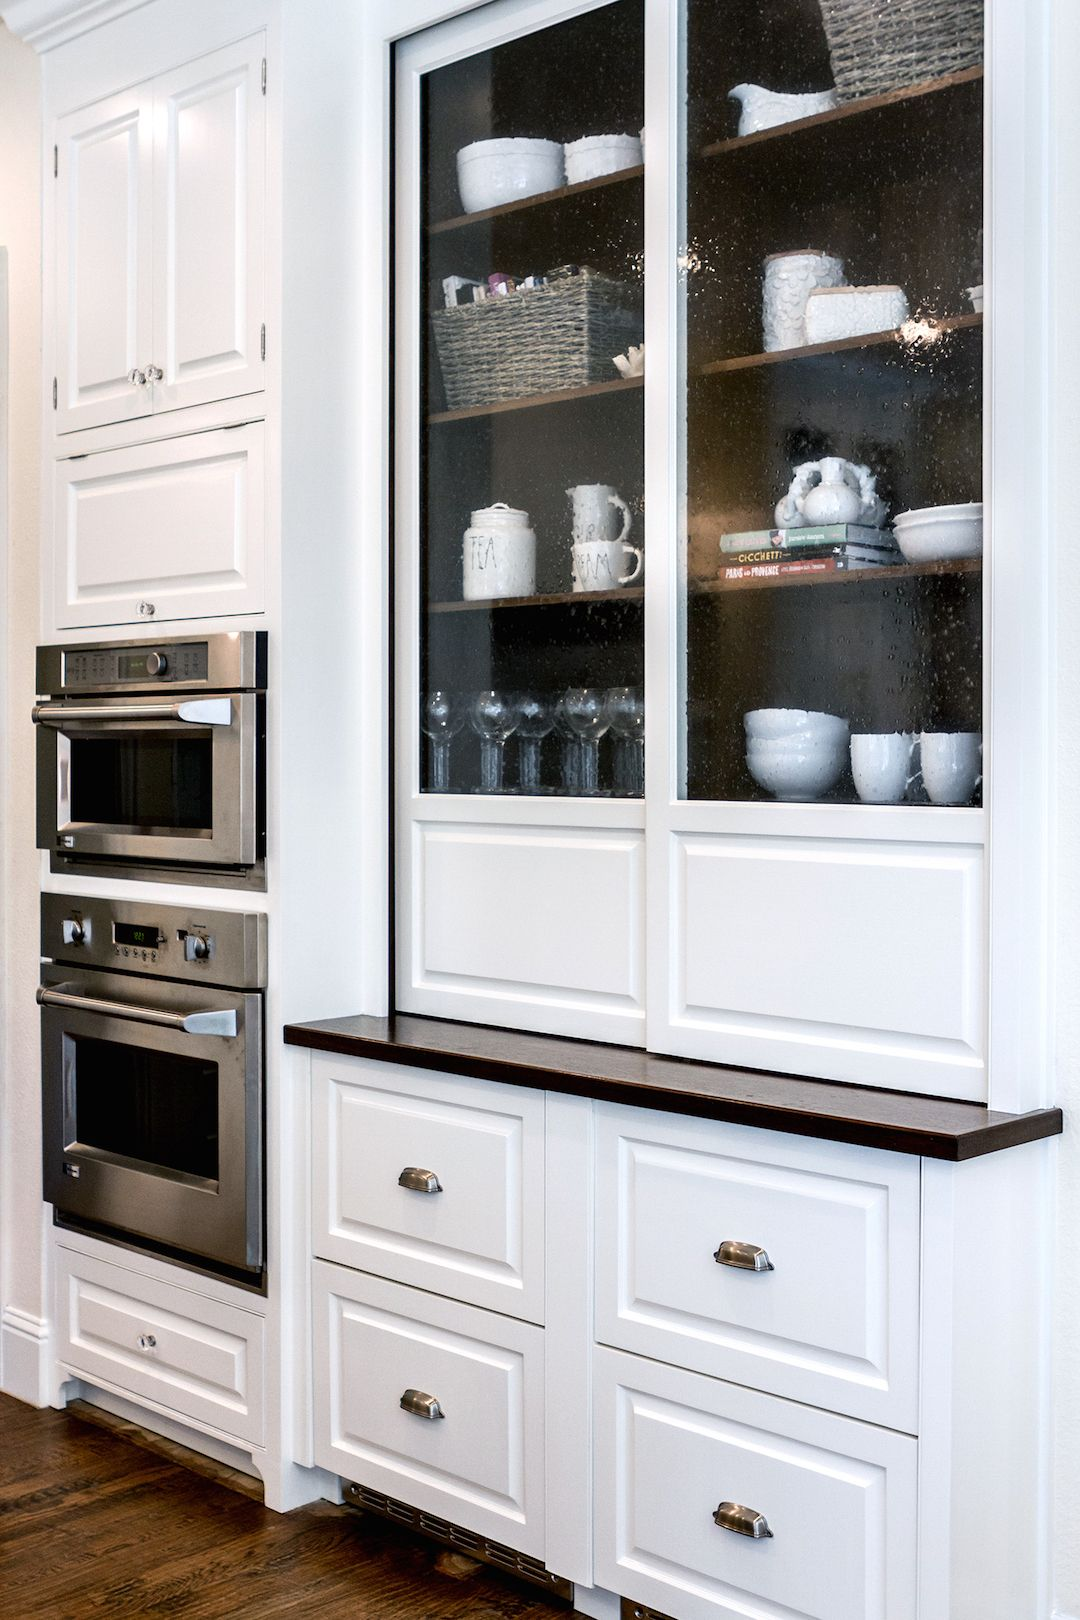 Decor Inspiration: A Go-To Kitchen (The Simply Luxurious